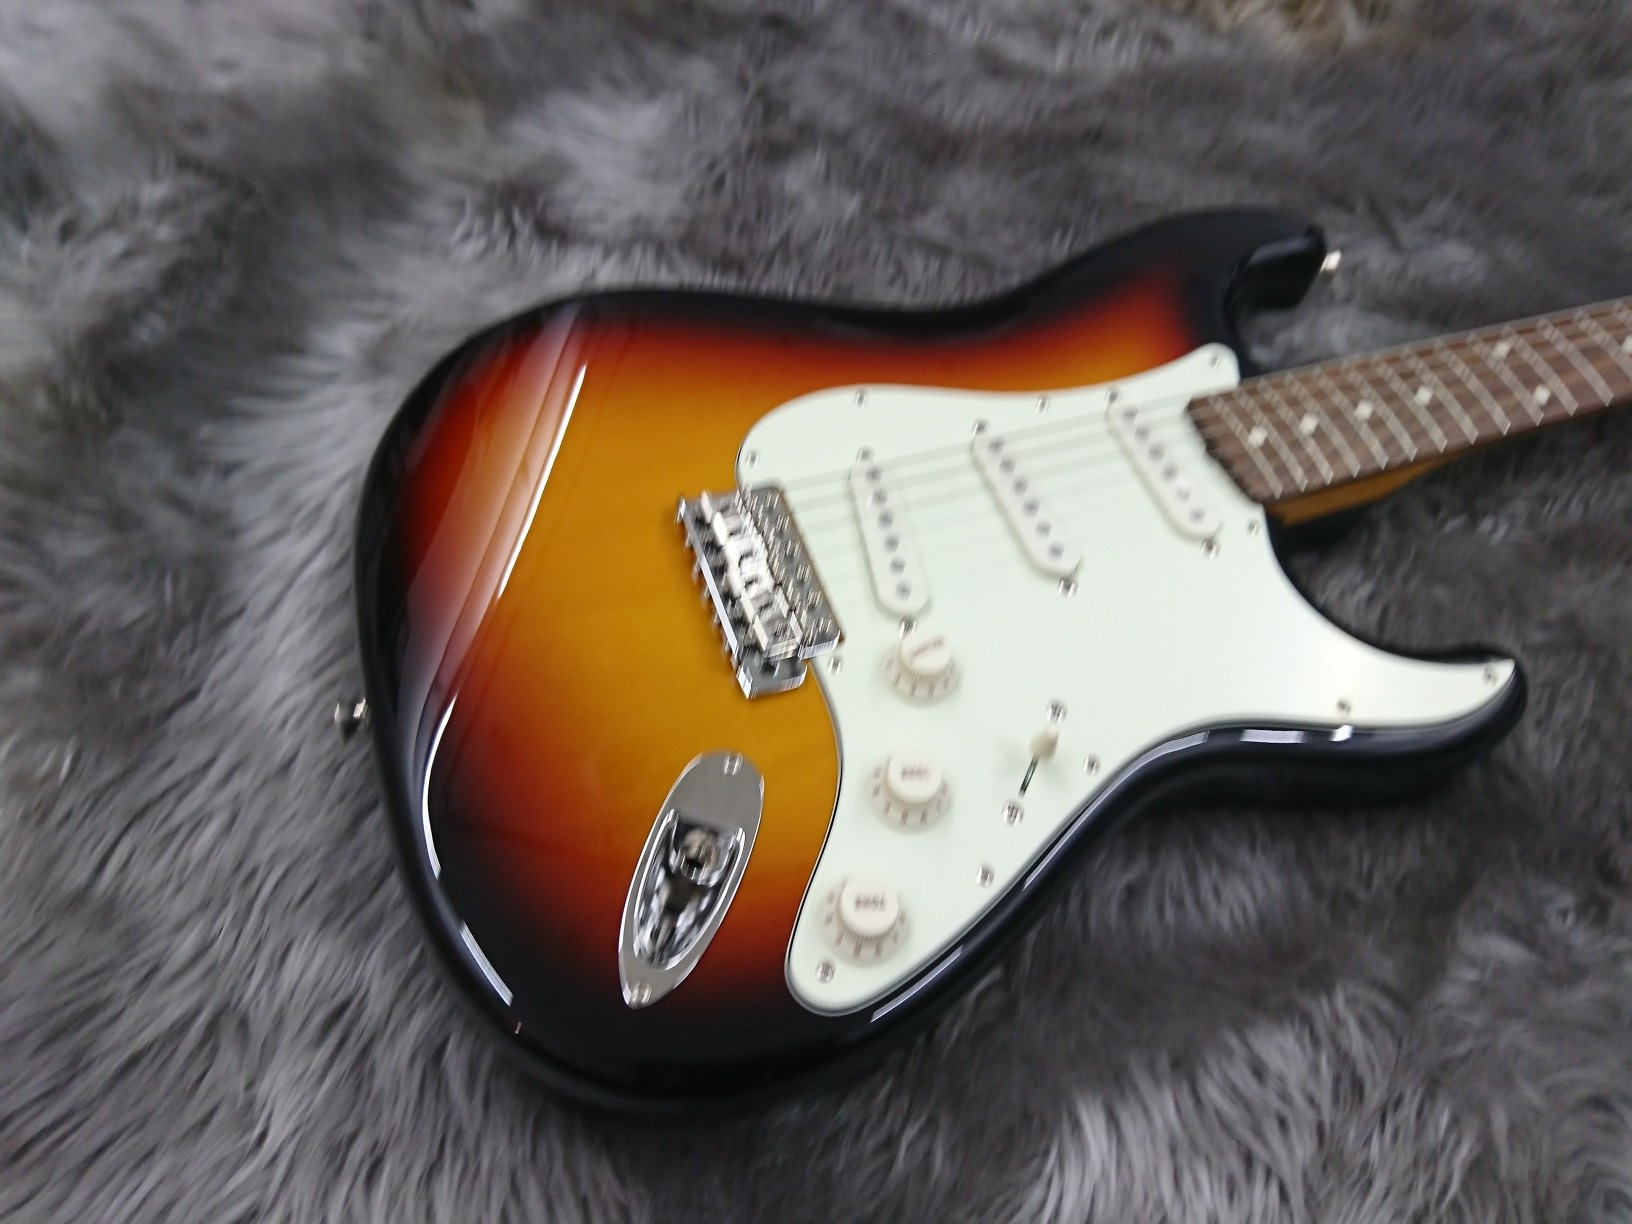 MADE IN JAPAN TRADITIONAL 60S STRATOCASTER RWのボディトップ-アップ画像